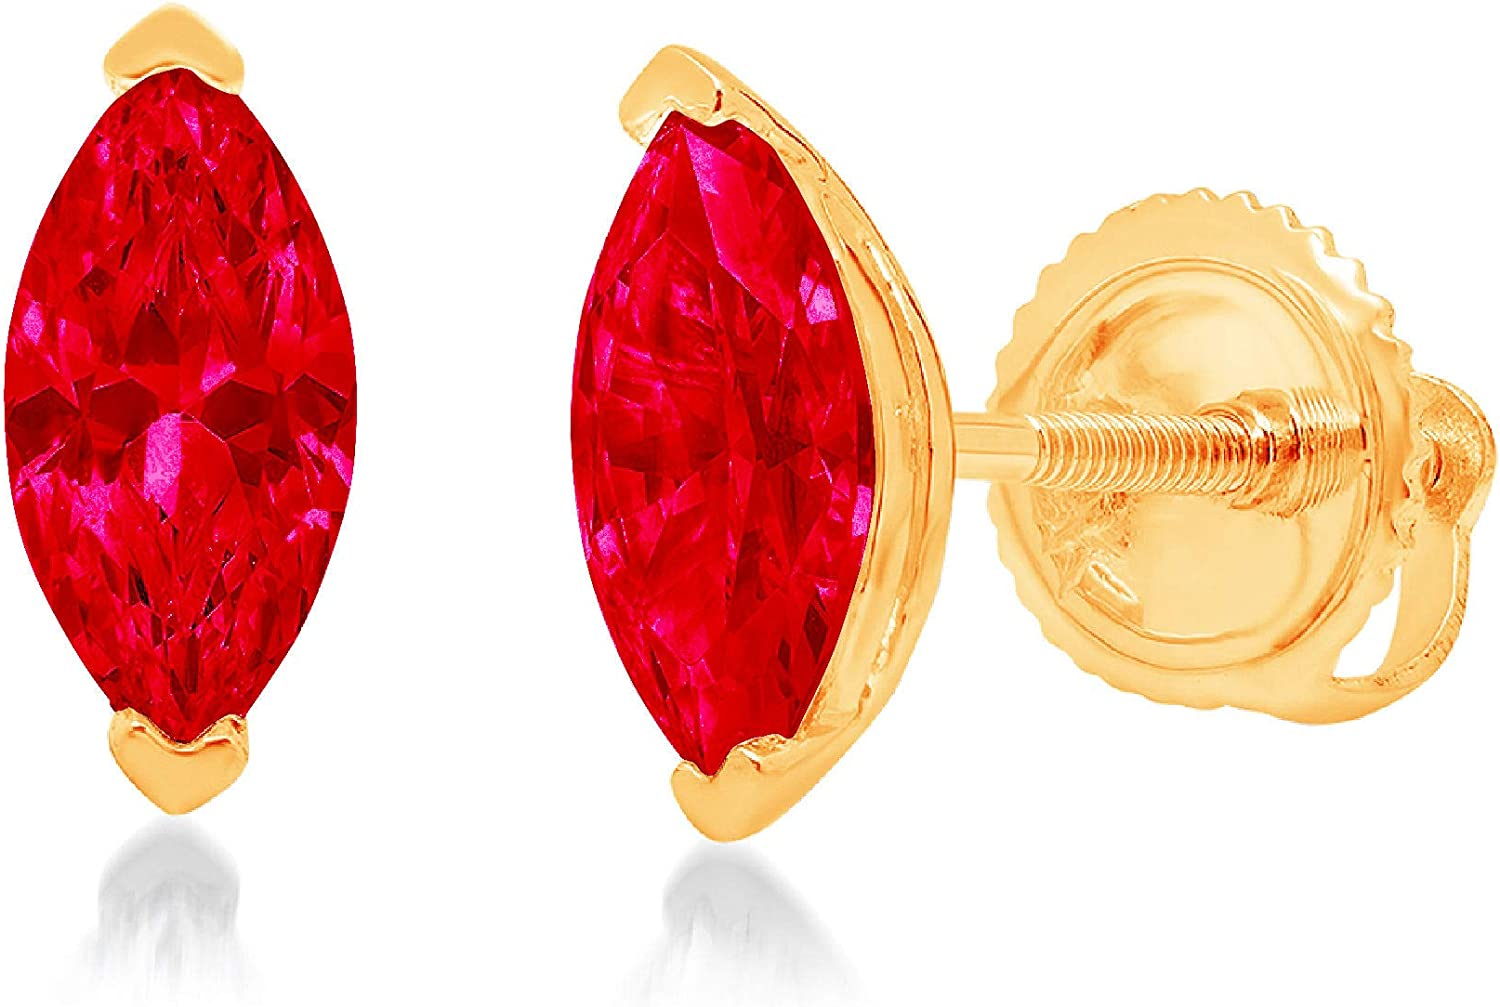 Clara Pucci 1.0 ct Brilliant Marquise Cut Solitaire VVS1 Flawless Simulated Ruby Gemstone Pair of Stud Earrings Solid 18K Yellow Gold Screw Back